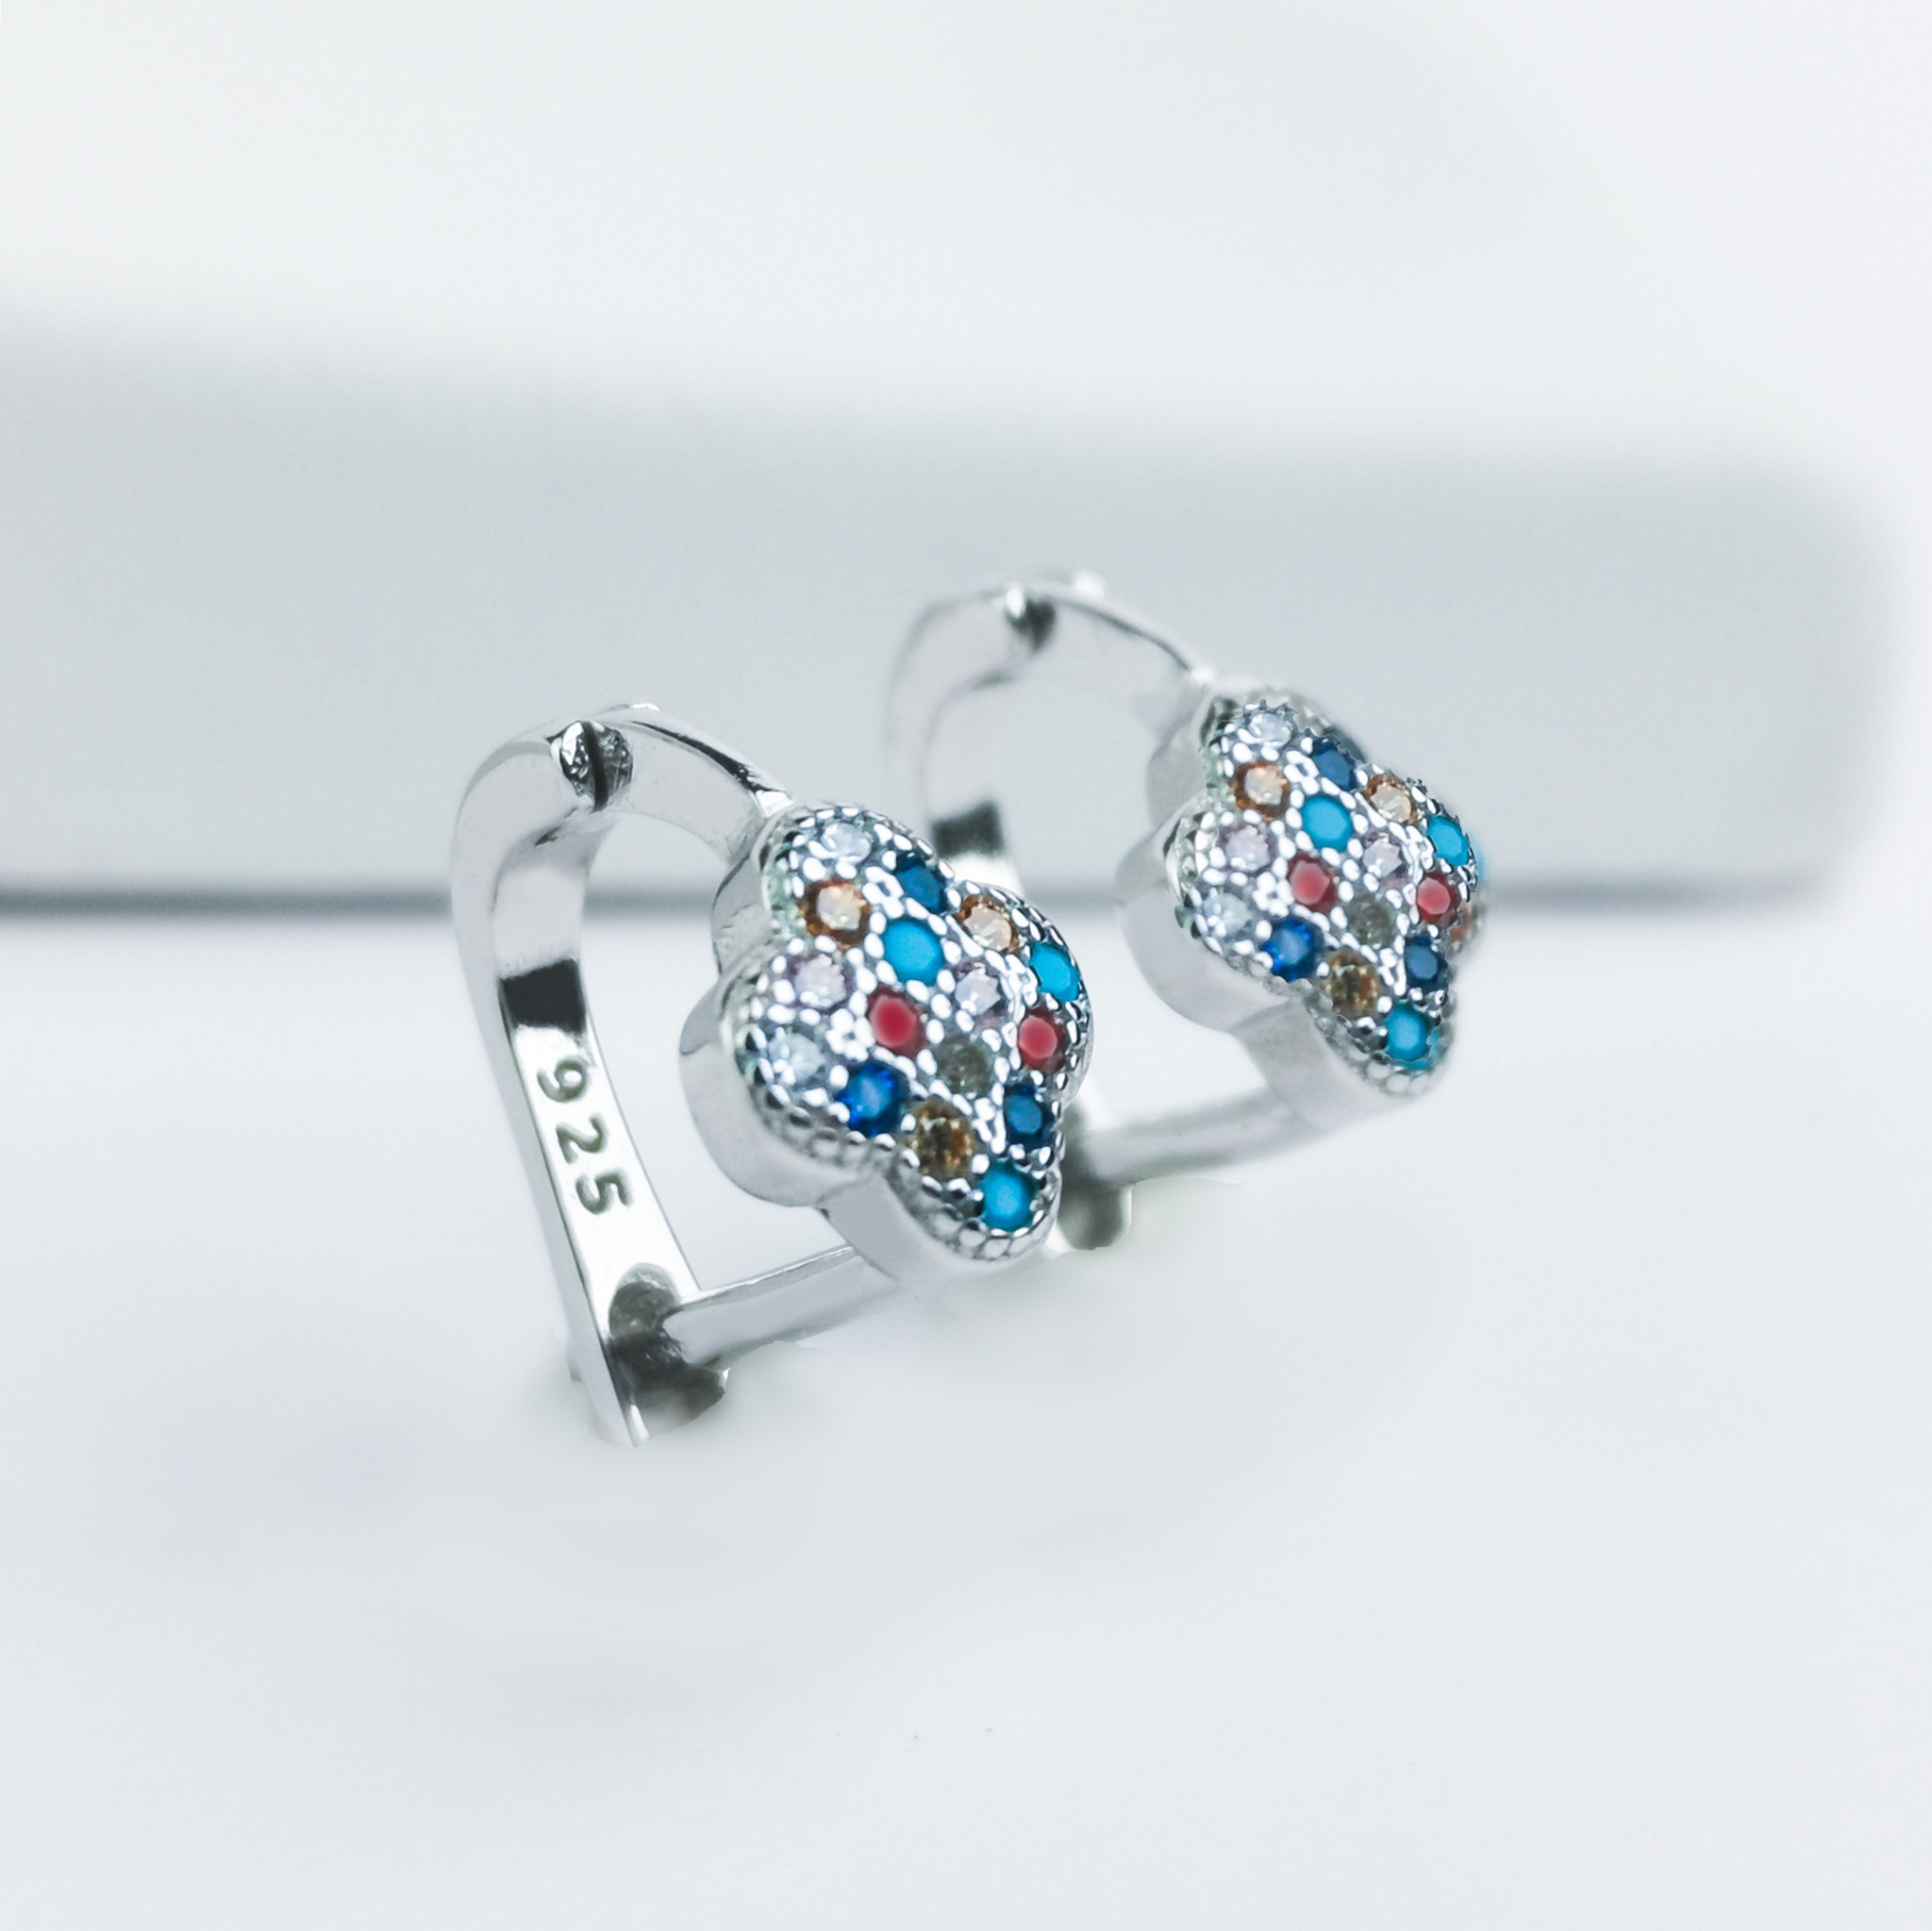 2 - Clover Stones Of Luck Silver Örhänge 925 Modern and trendy earings and women jewelry and accessories